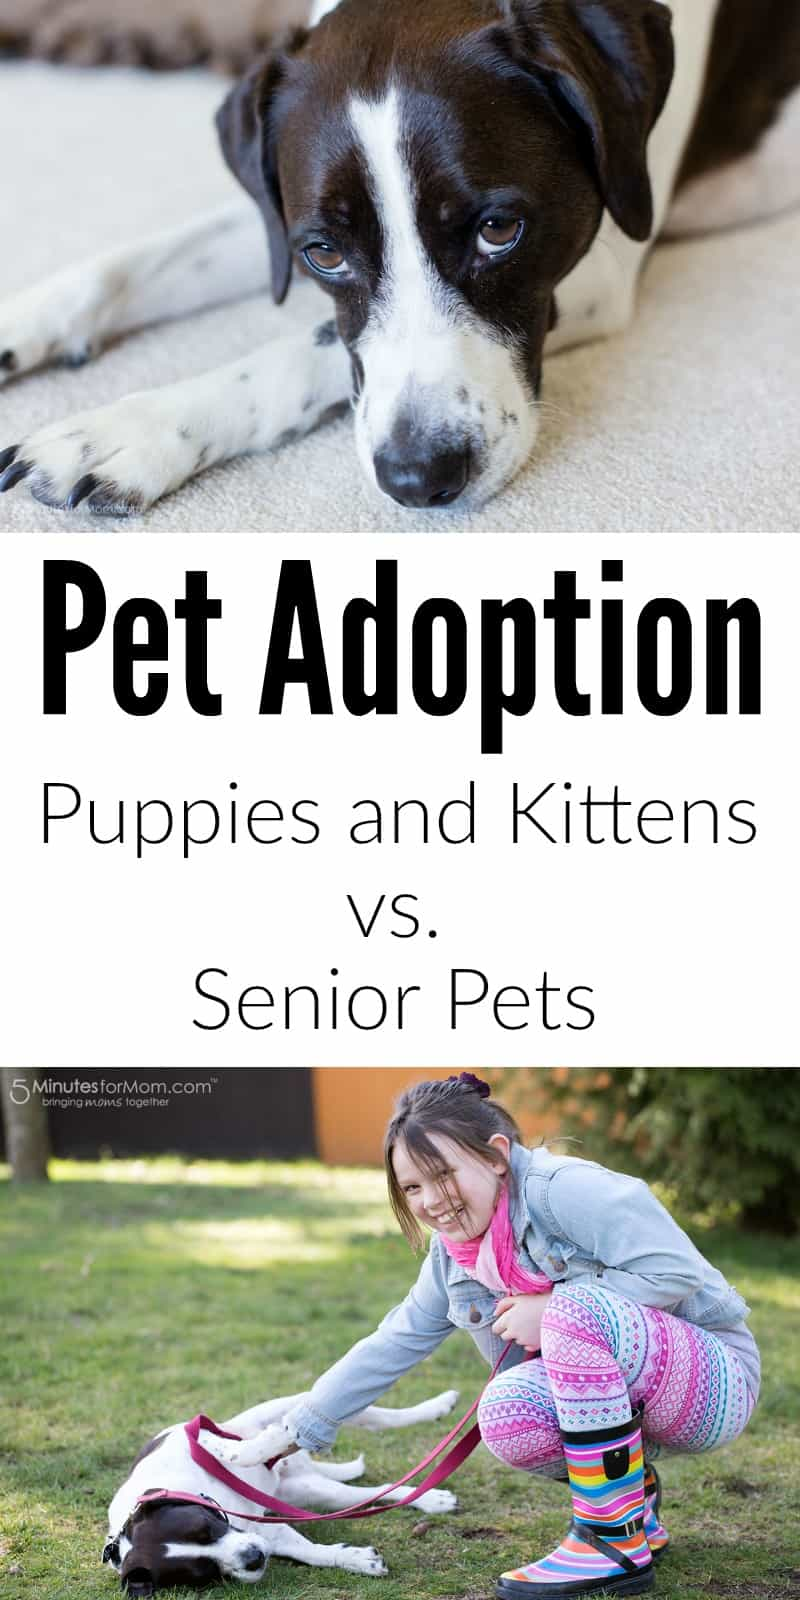 Pet Adoption - Puppies and Kittens vs. Senior Pets